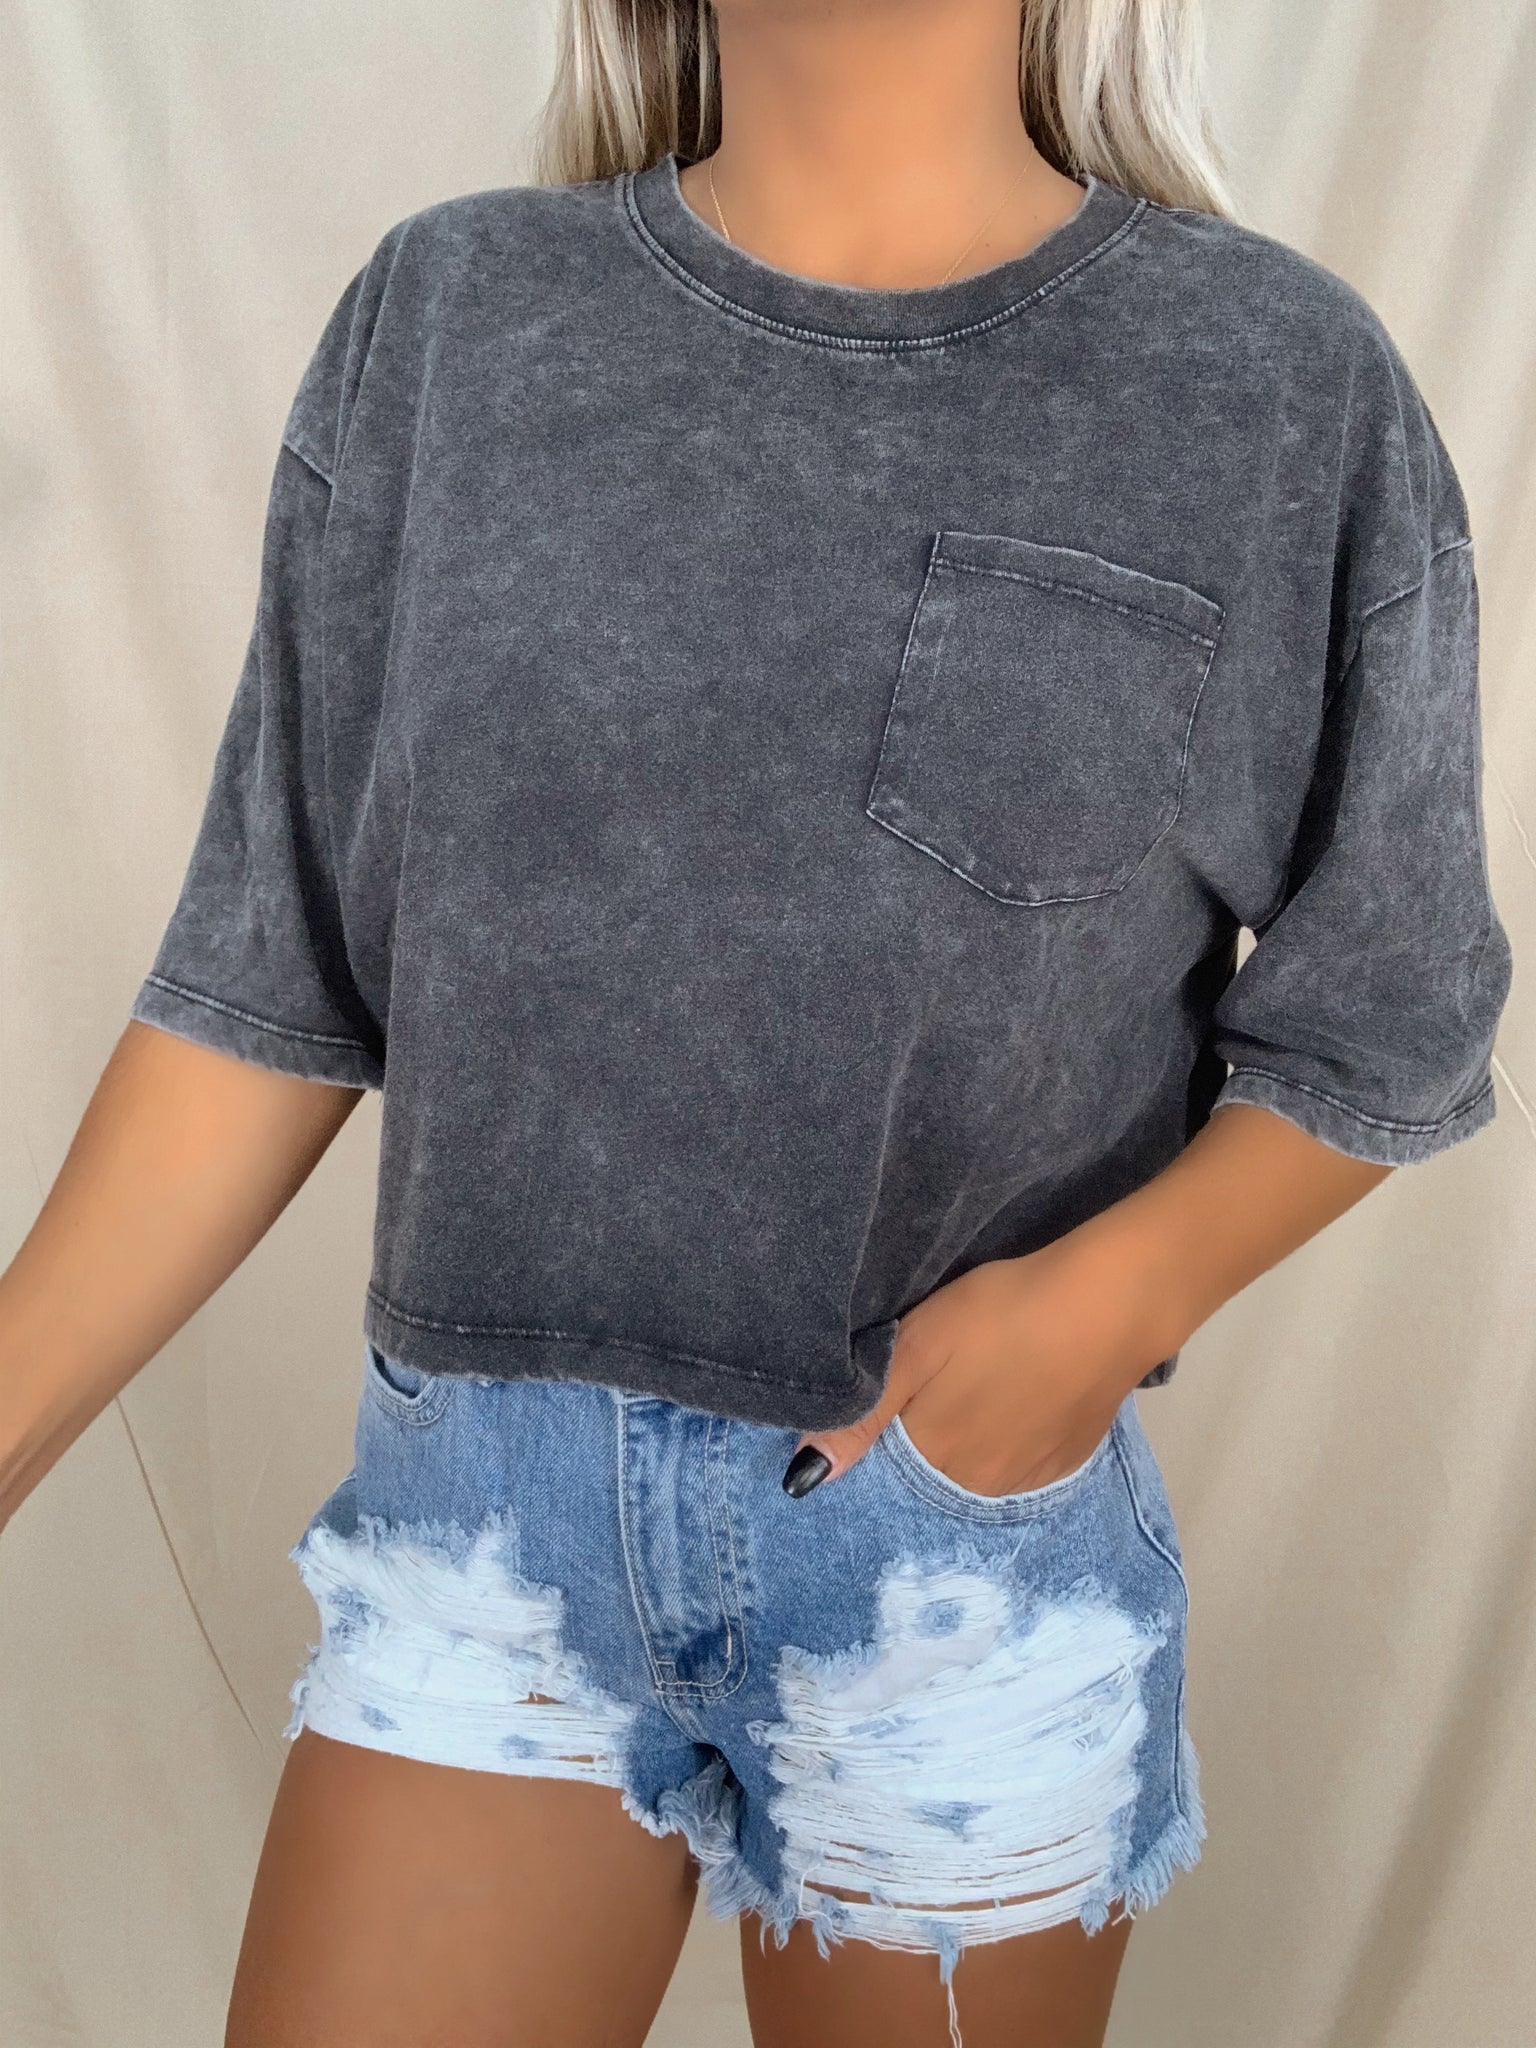 Mineral Washed Cropped Tee (Black)